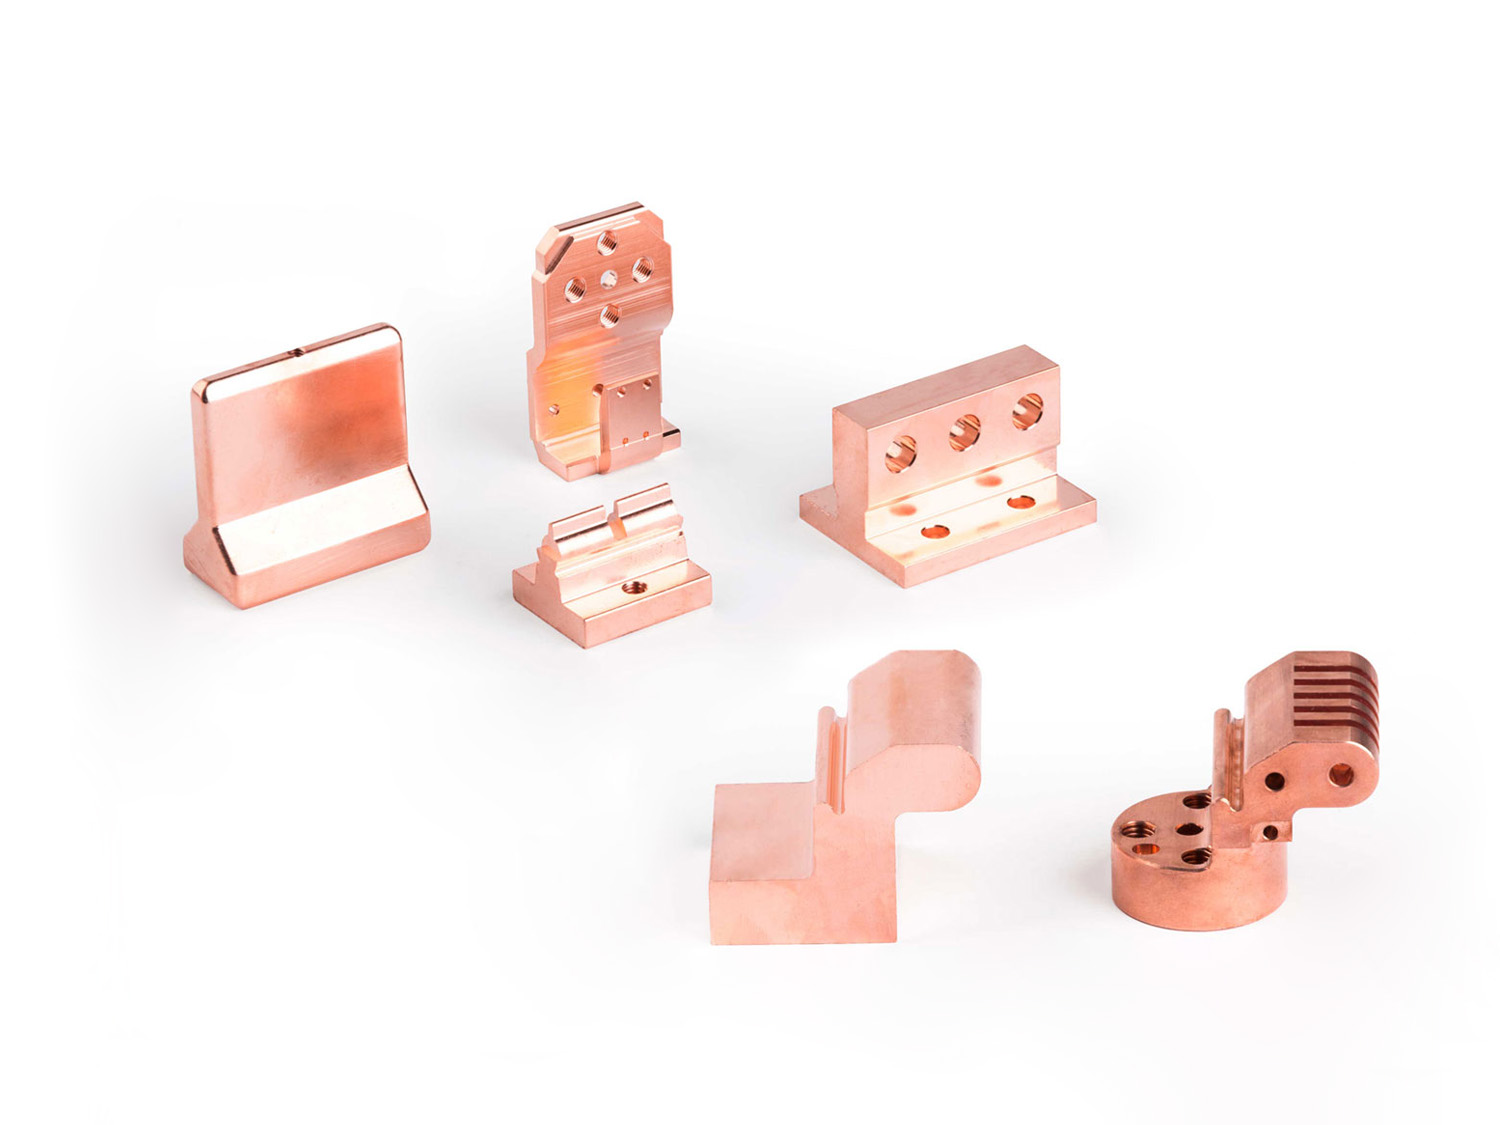 MACHINED PARTS FROM PROFILES